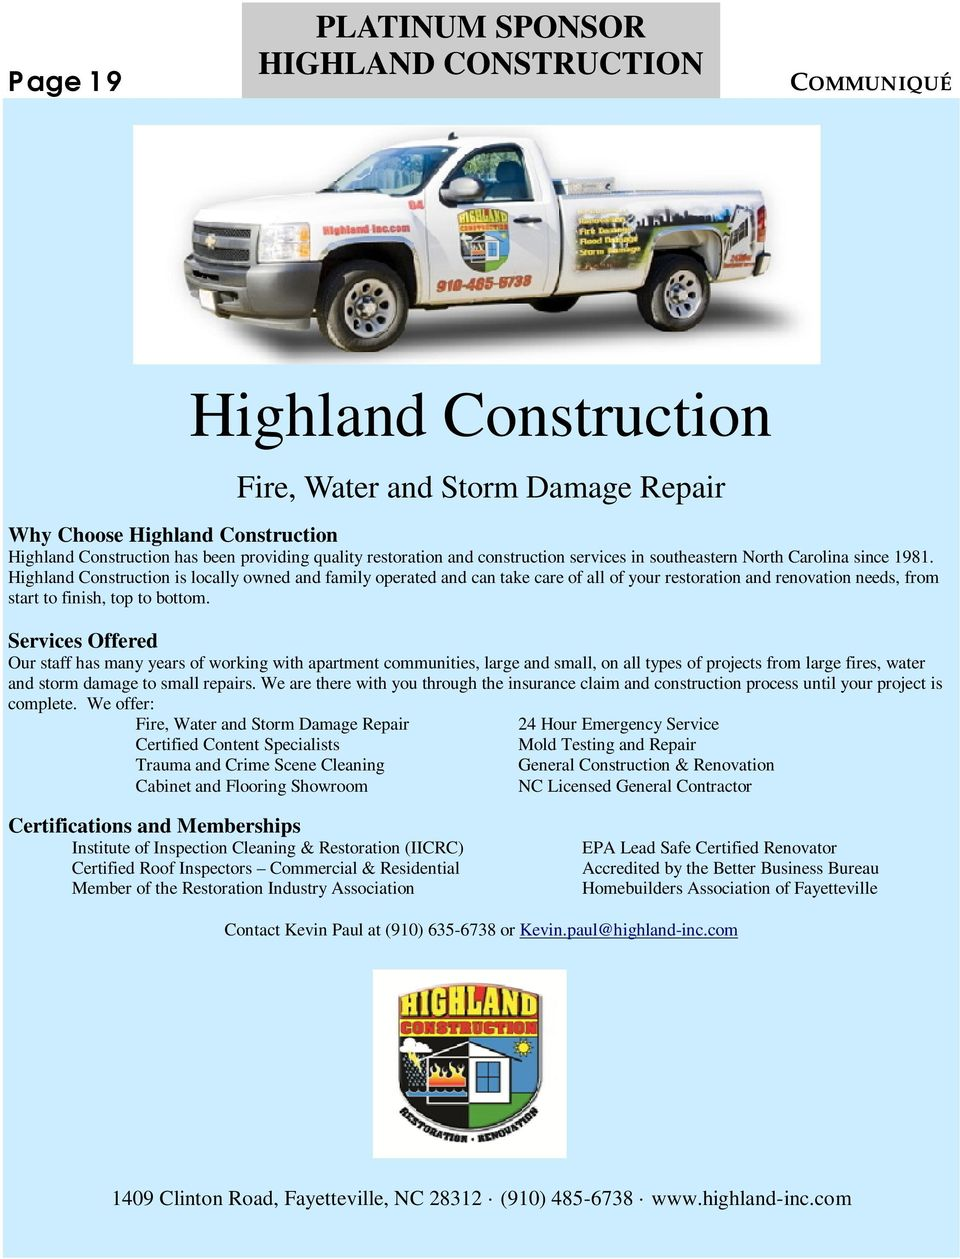 Highland Construction is locally owned and family operated and can take care of all of your restoration and renovation needs, from start to finish, top to bottom.